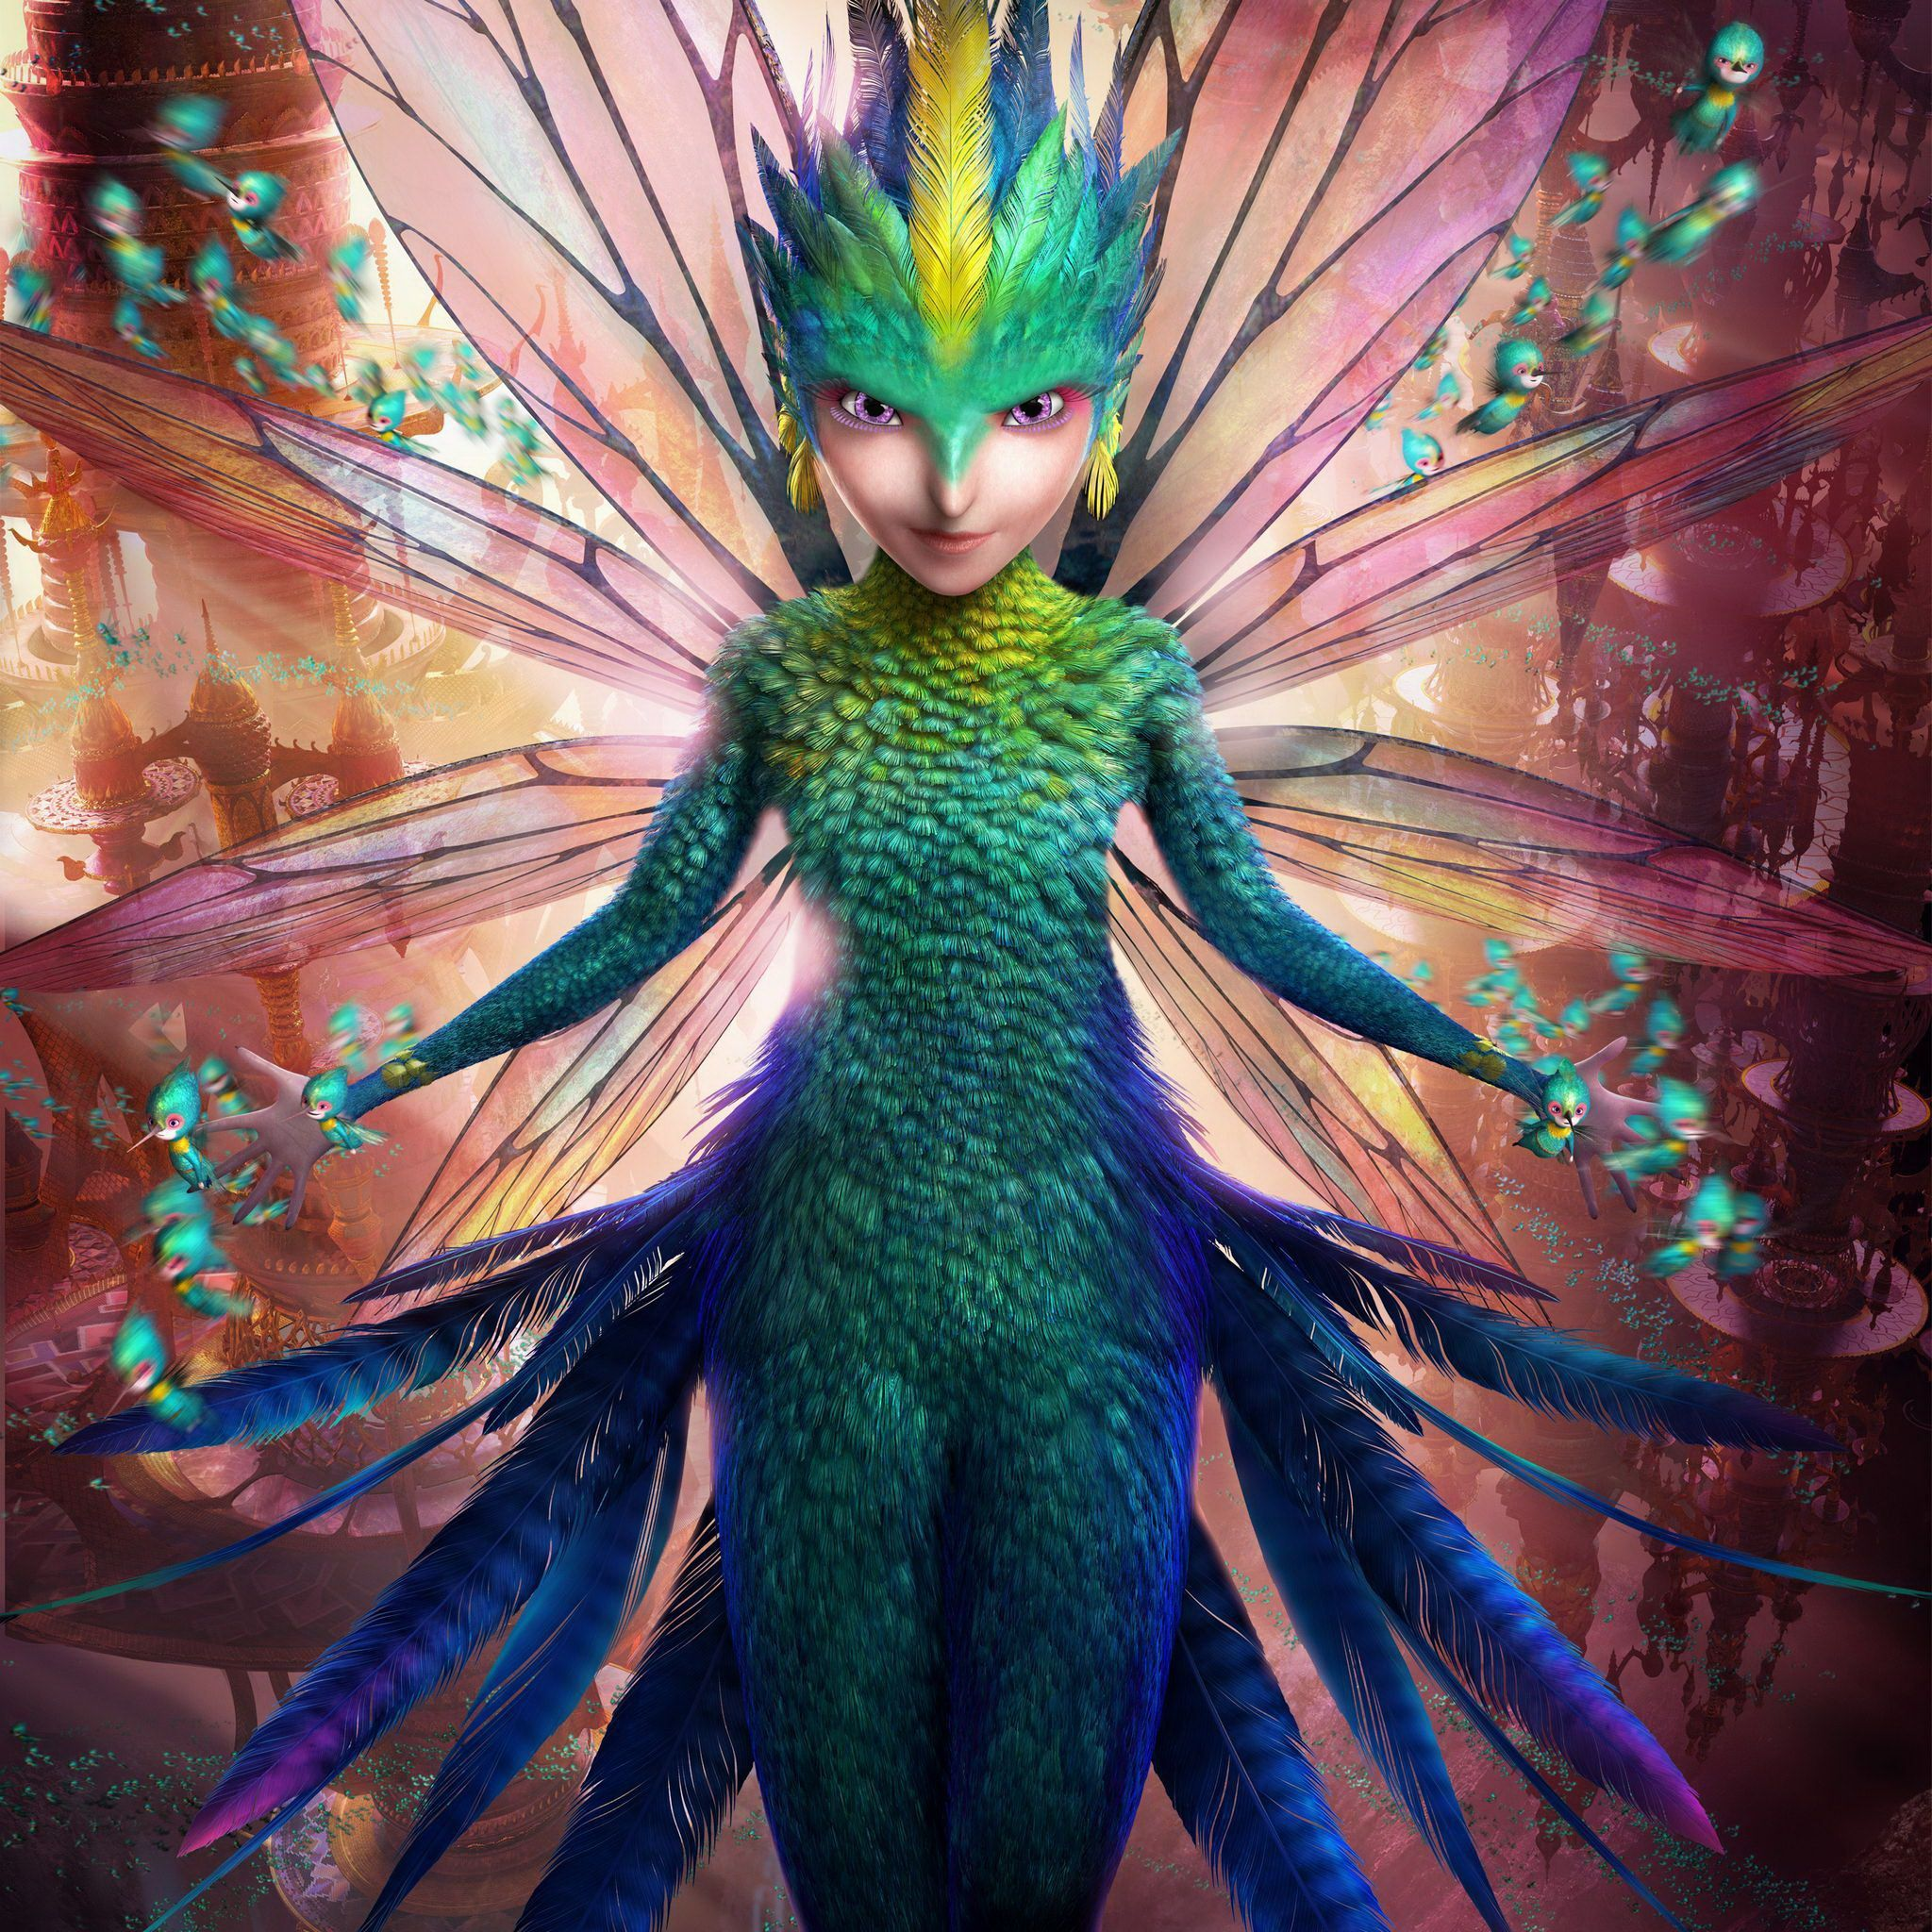 Rise of the guardians ipad 4 wallpapers 2048x2048 13g 2048 rise of the guardians ipad 4 wallpapers 2048x2048 13g 2048 thecheapjerseys Images